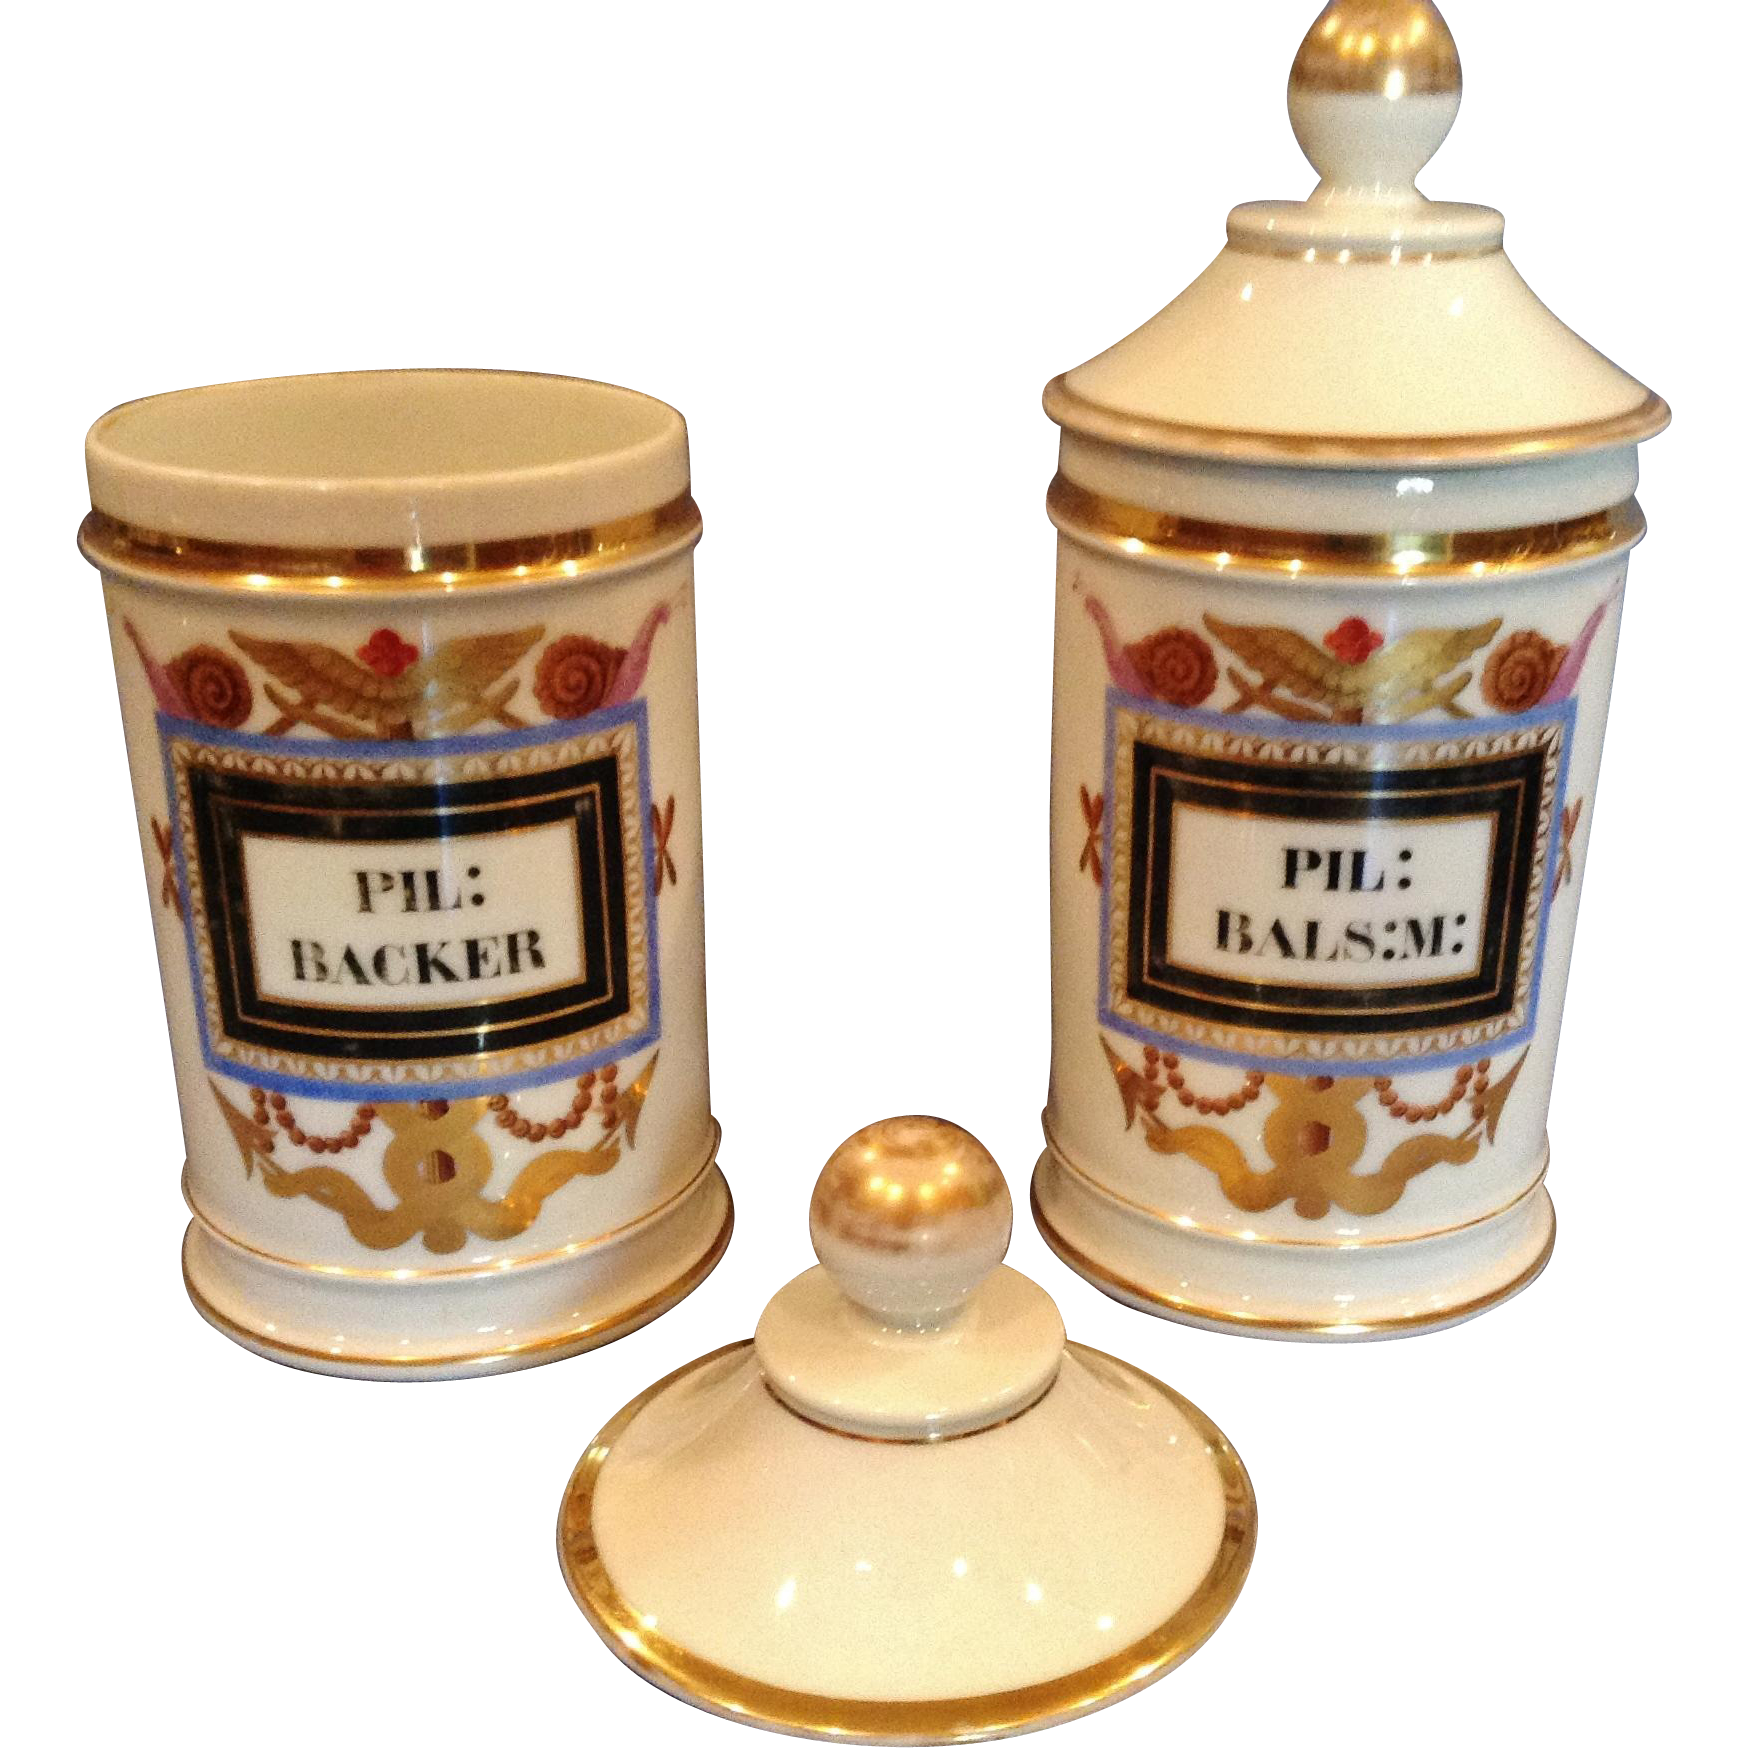 Antique French Porcelain Pharmacy or Apothecary Jars, 19th Century